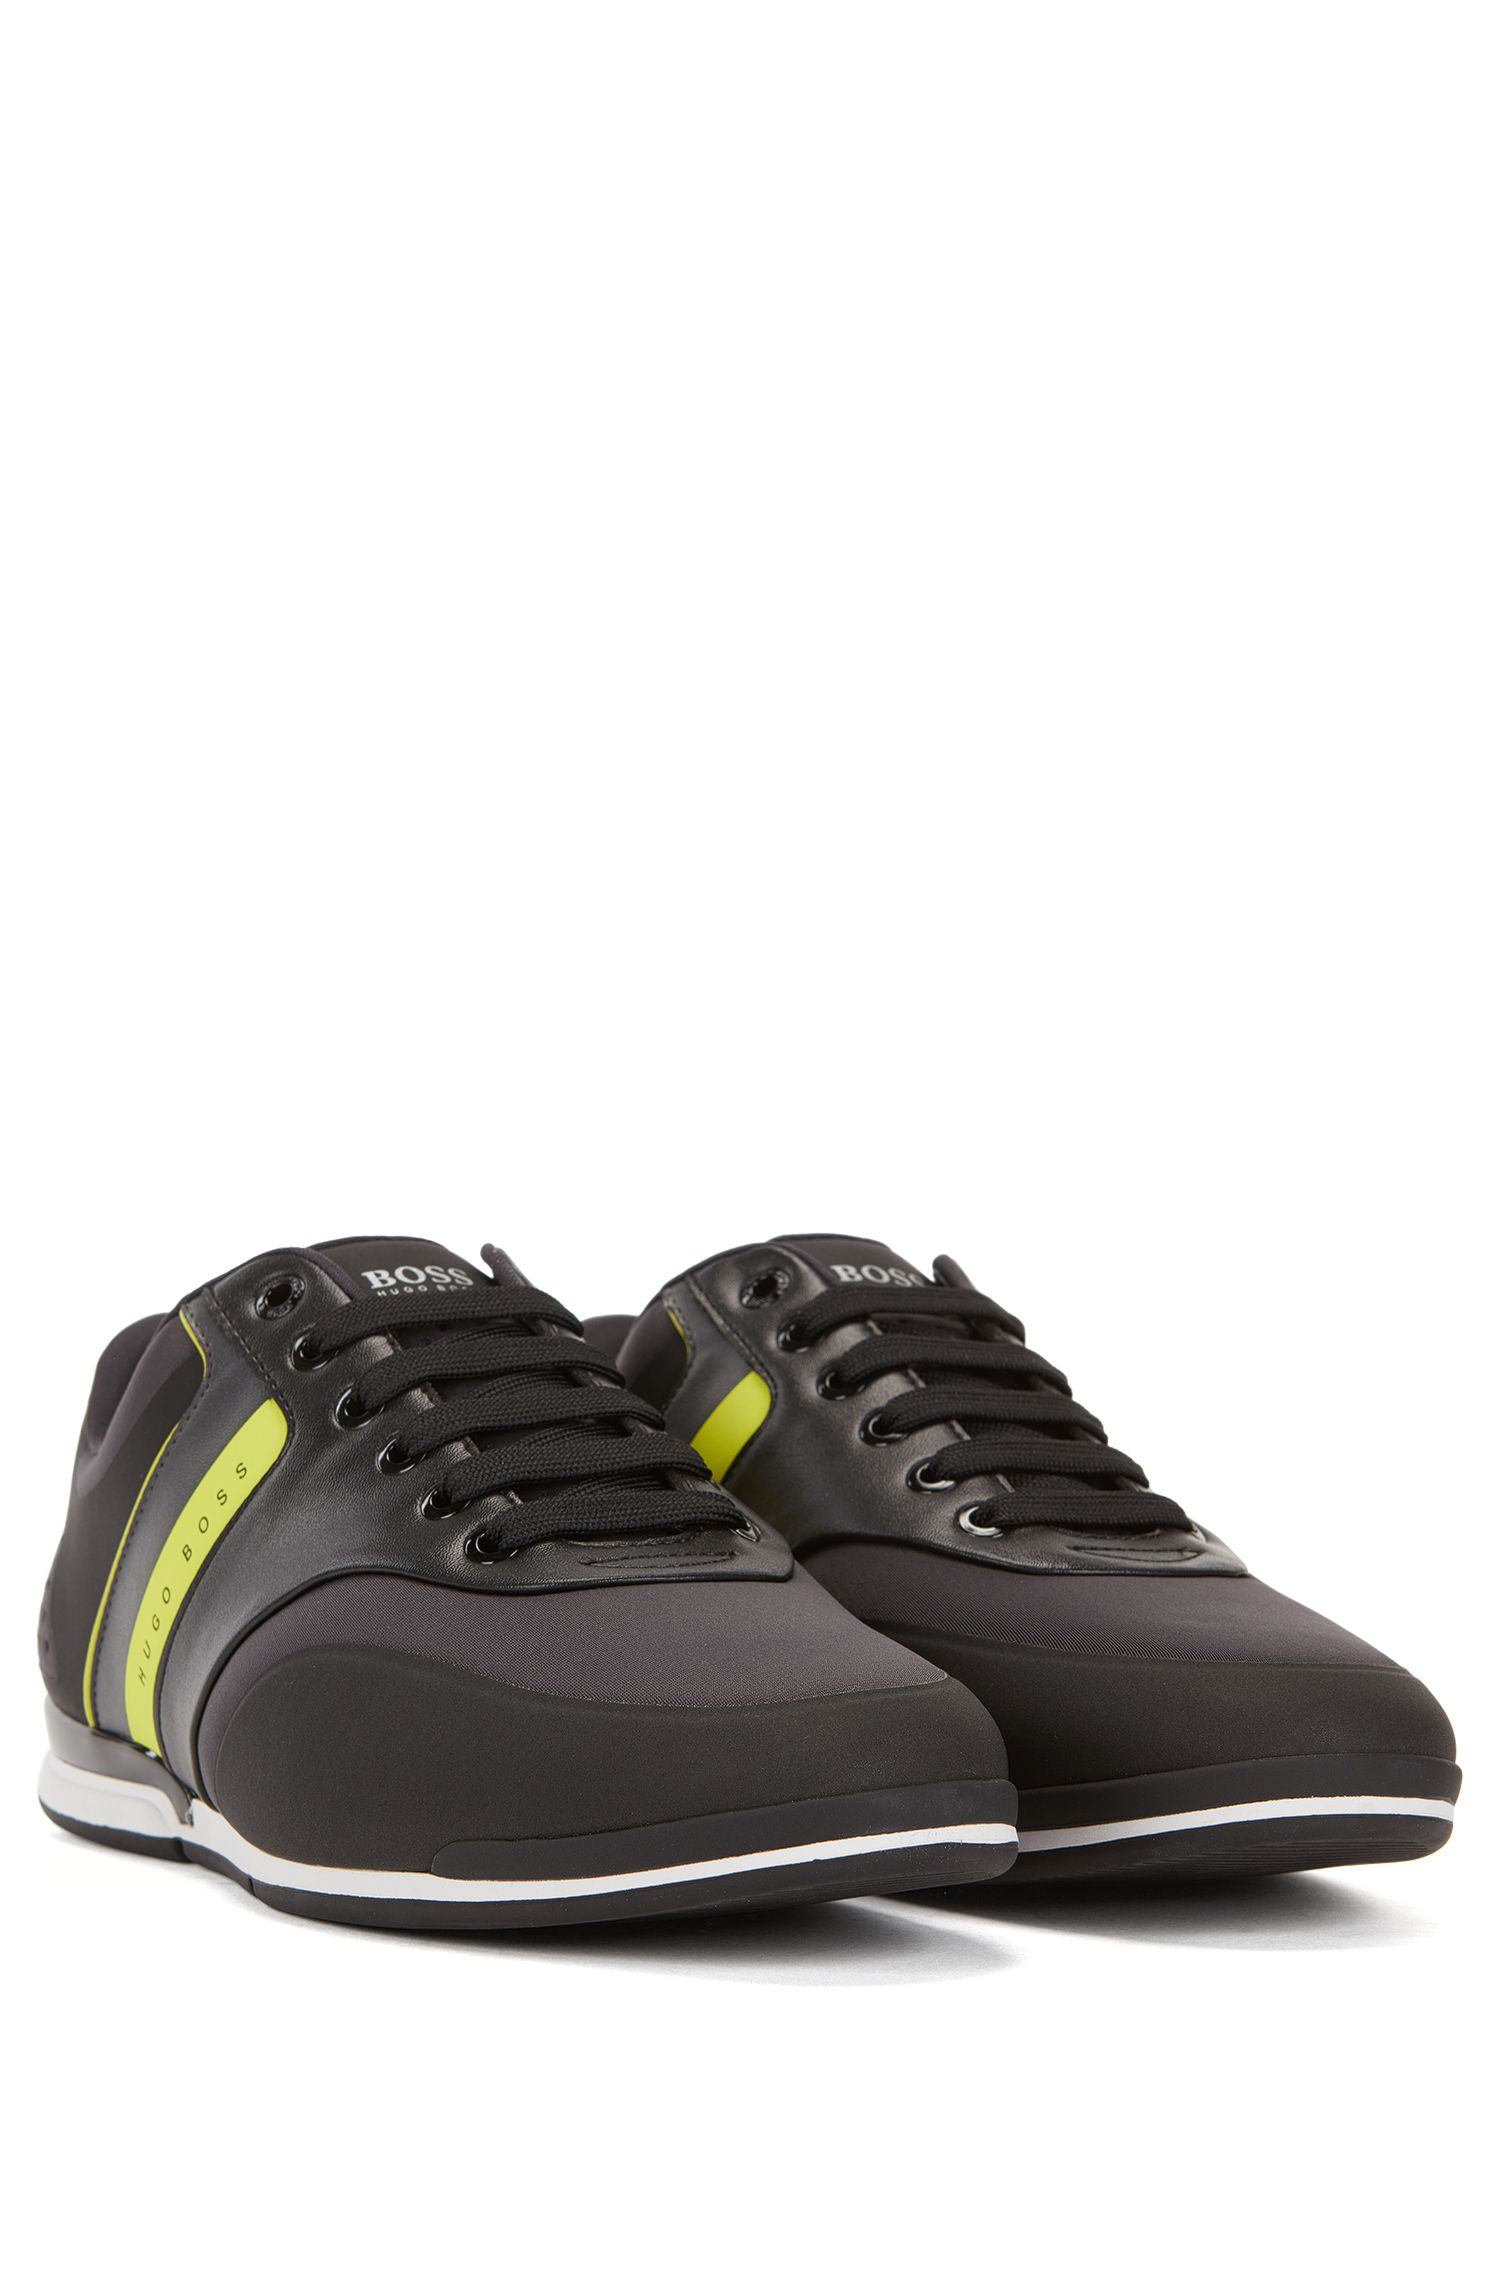 Low-top striped neoprene trainers